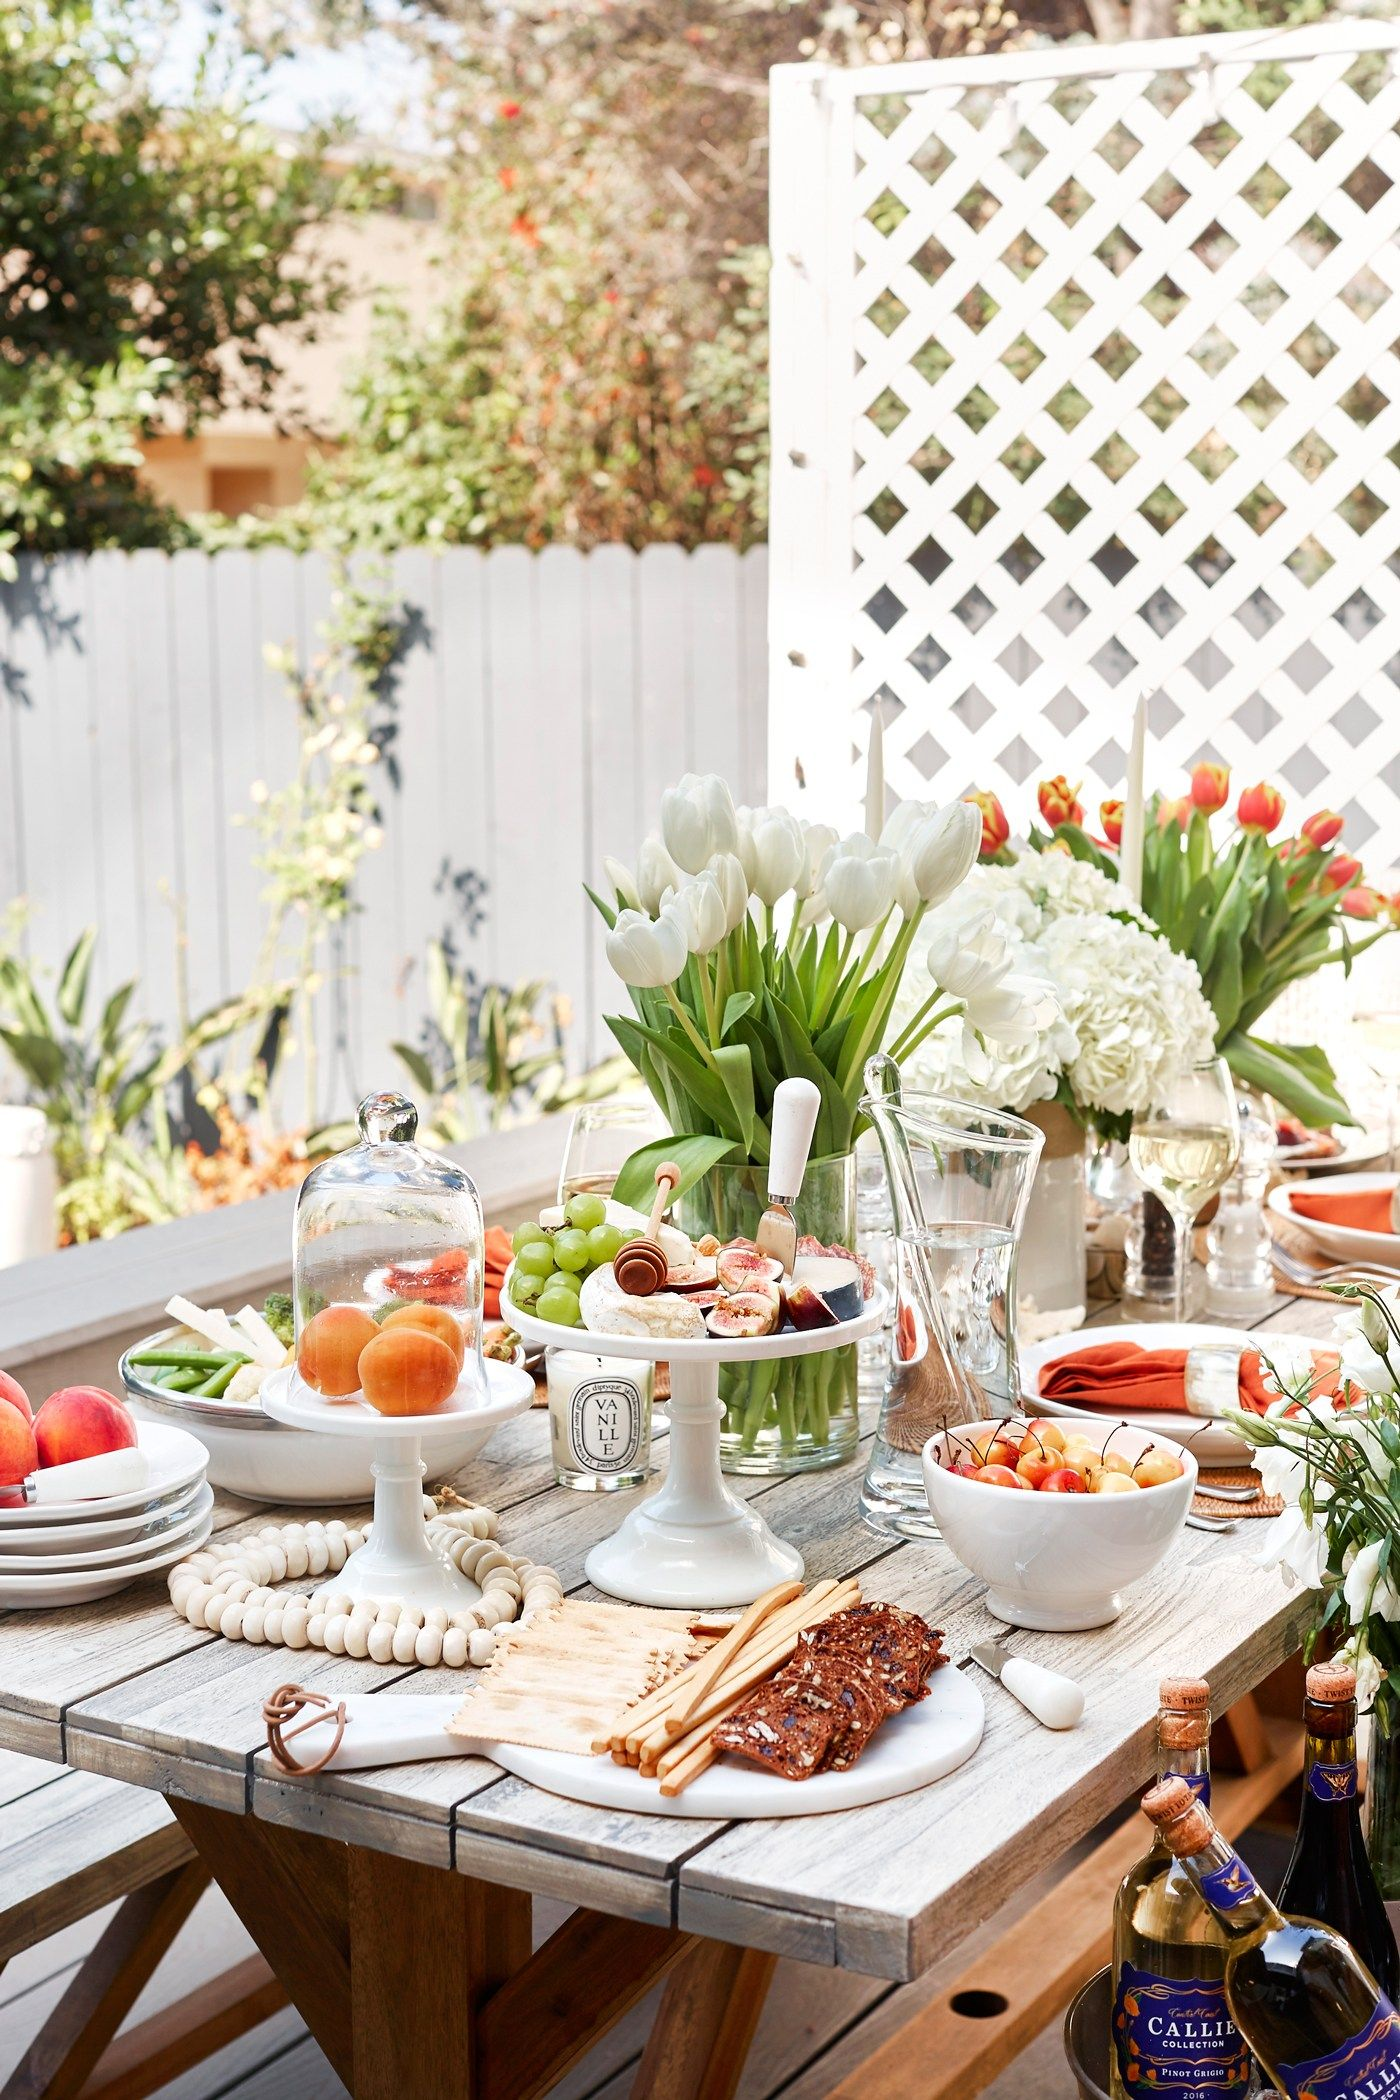 An Outdoor Dinner Party At Home With Love From Kat